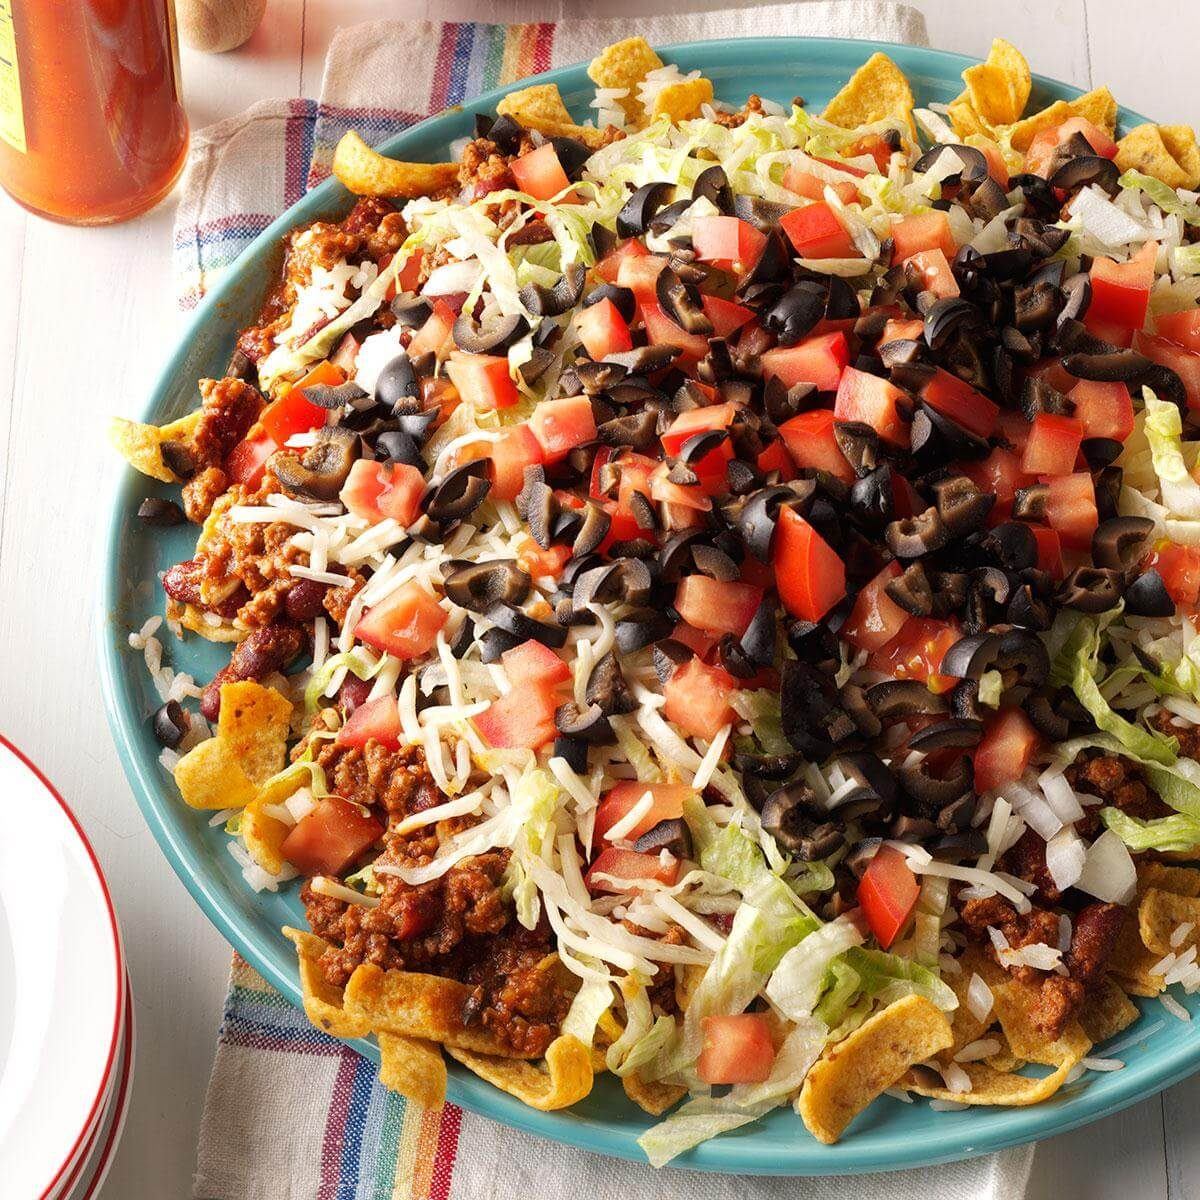 Top 10 Mexican Dinner Recipes: Mexican Fiesta Platter Recipe